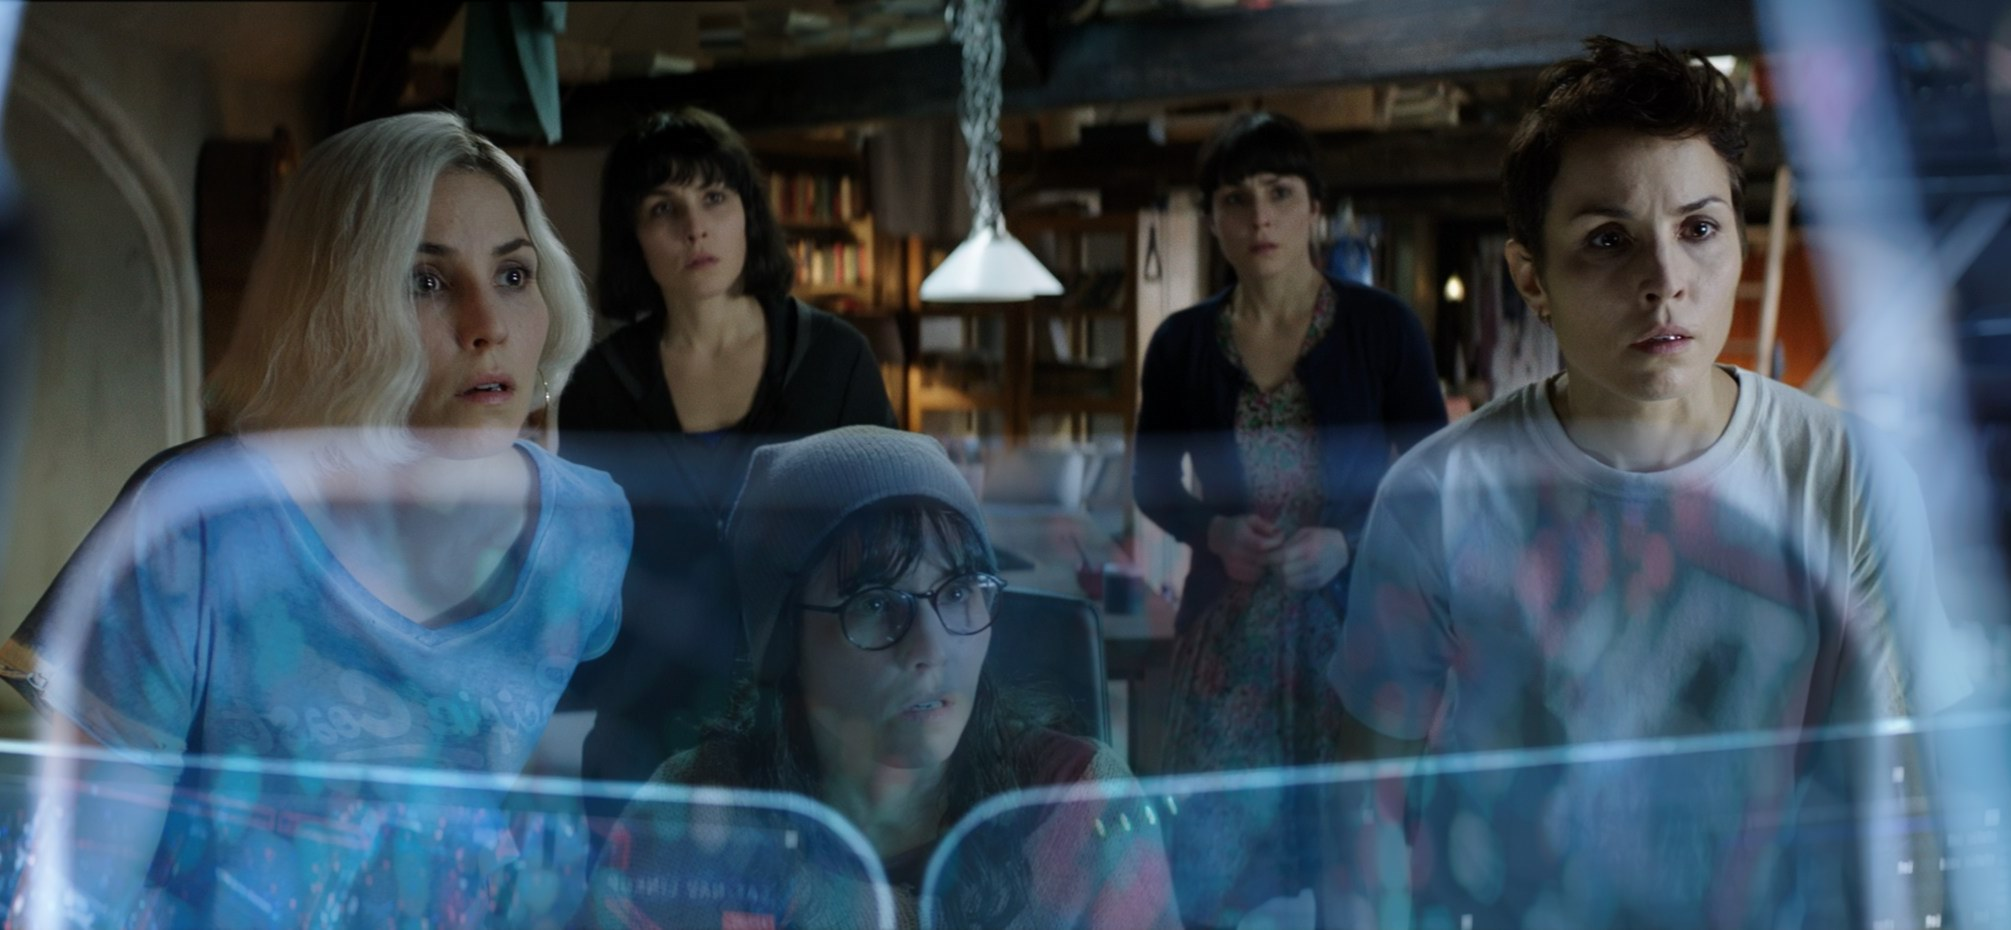 Noomi Rapace as five of the seven sisters as they set out to outwit the system in What Happened to Monday (2017)